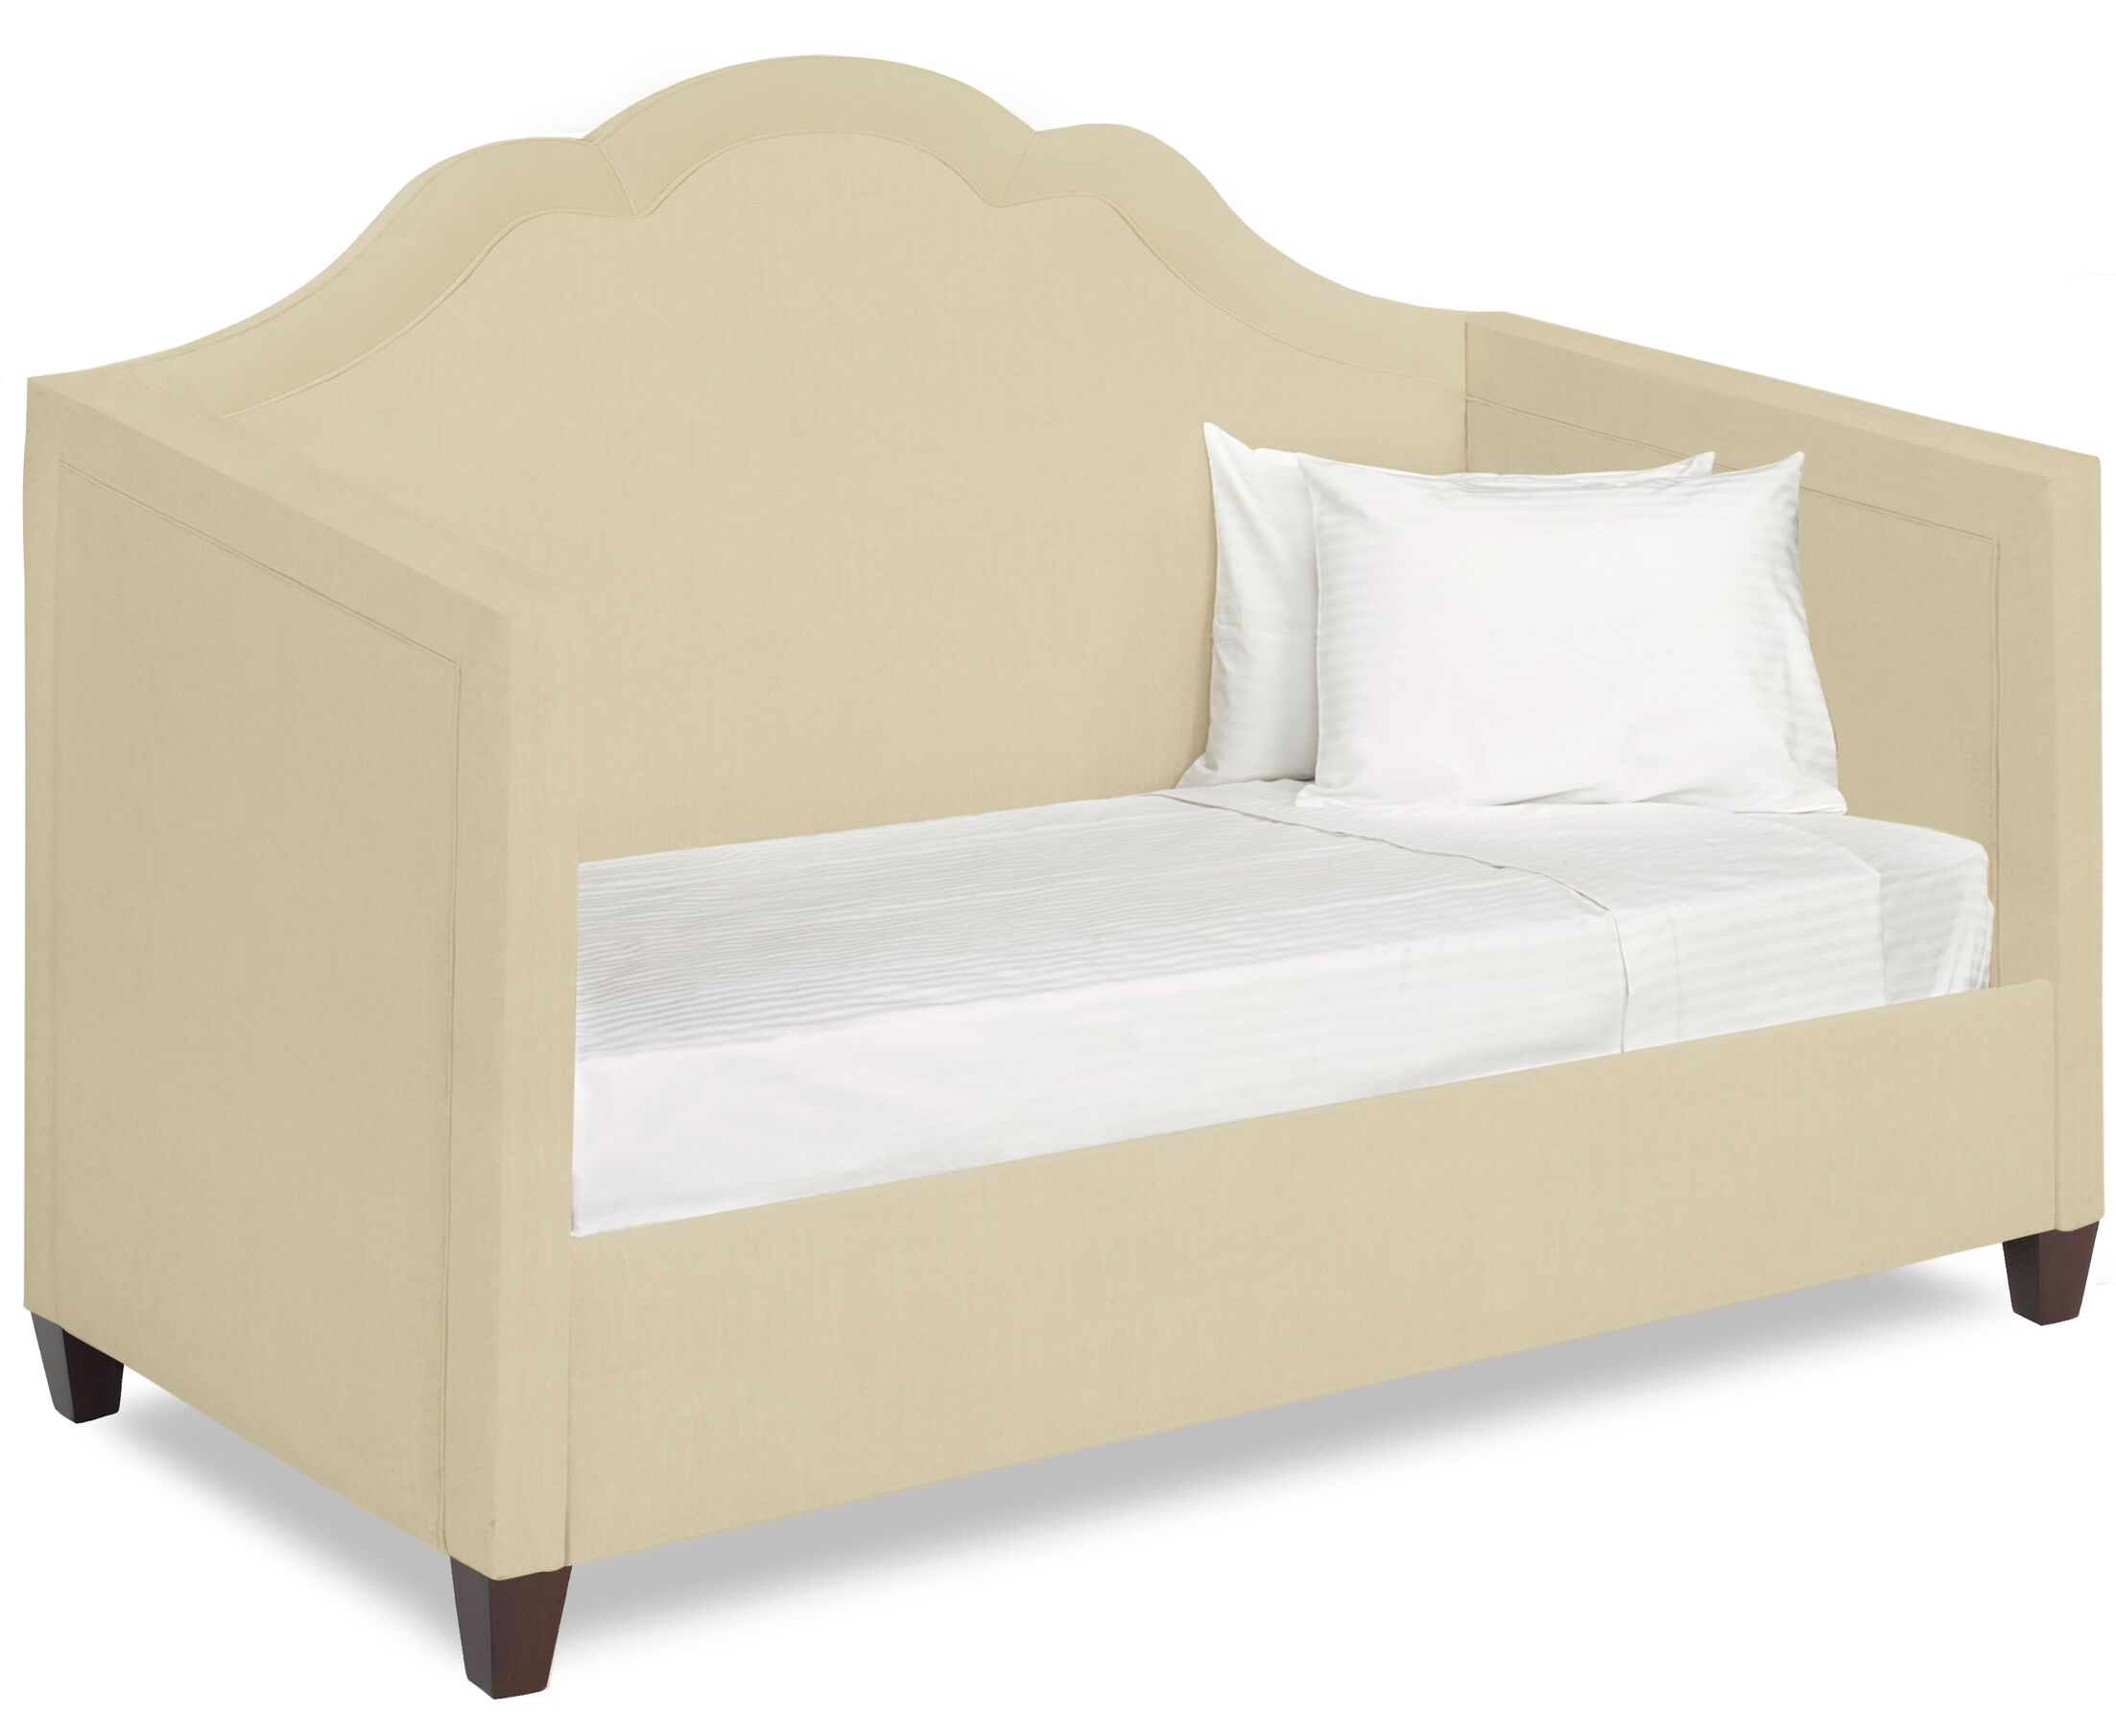 Dreamtime Daybed with Mattress Size: Twin XL, Color: Beige